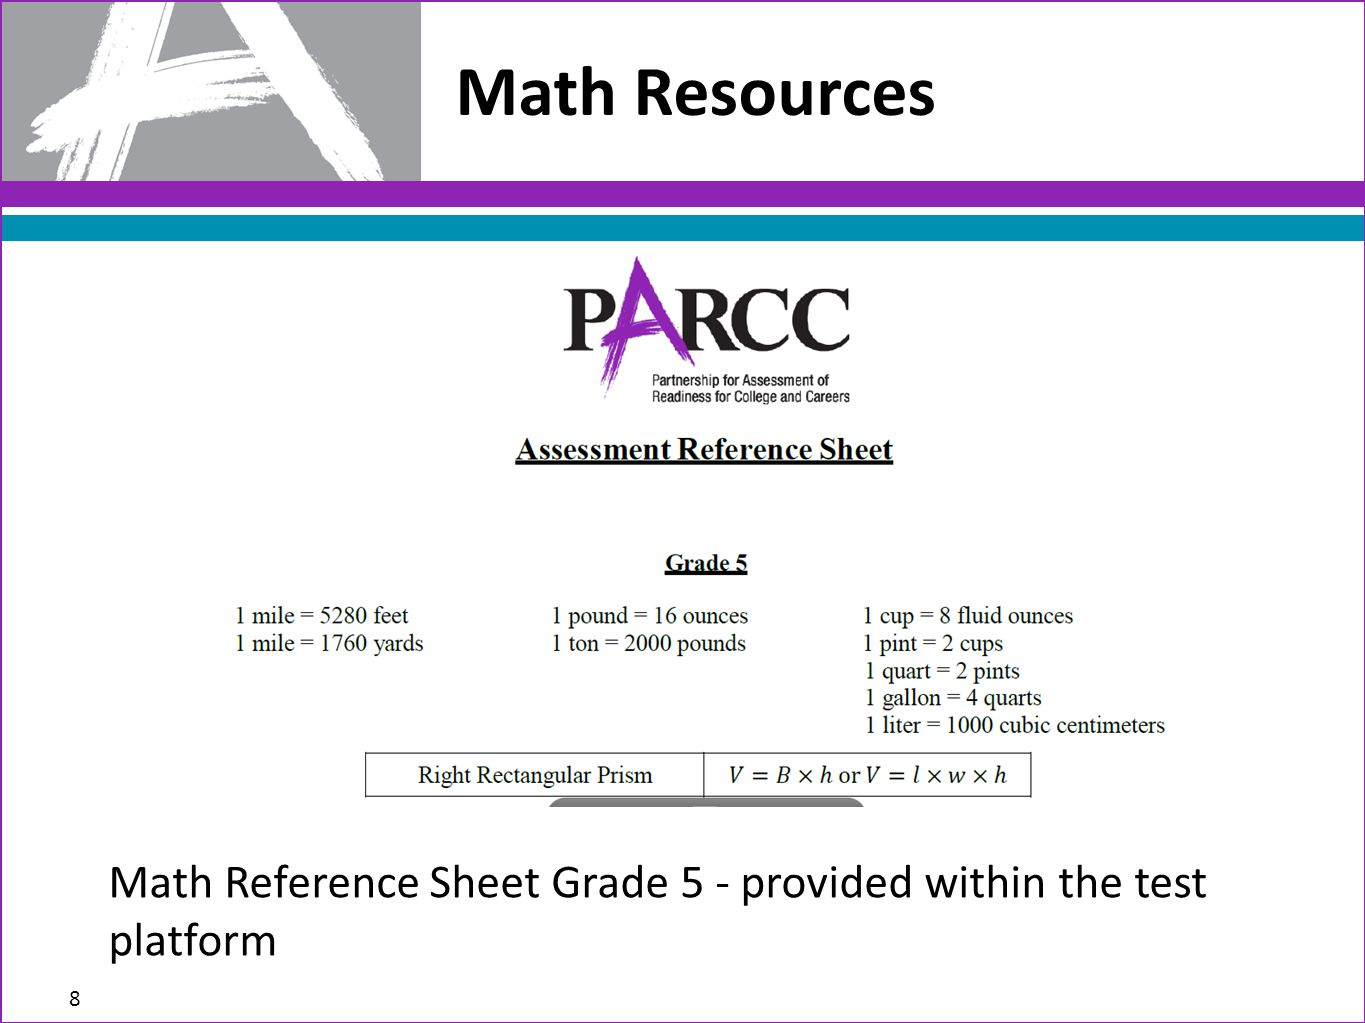 Math Resources Math Reference Sheet Grade 5 - provided within the test platform